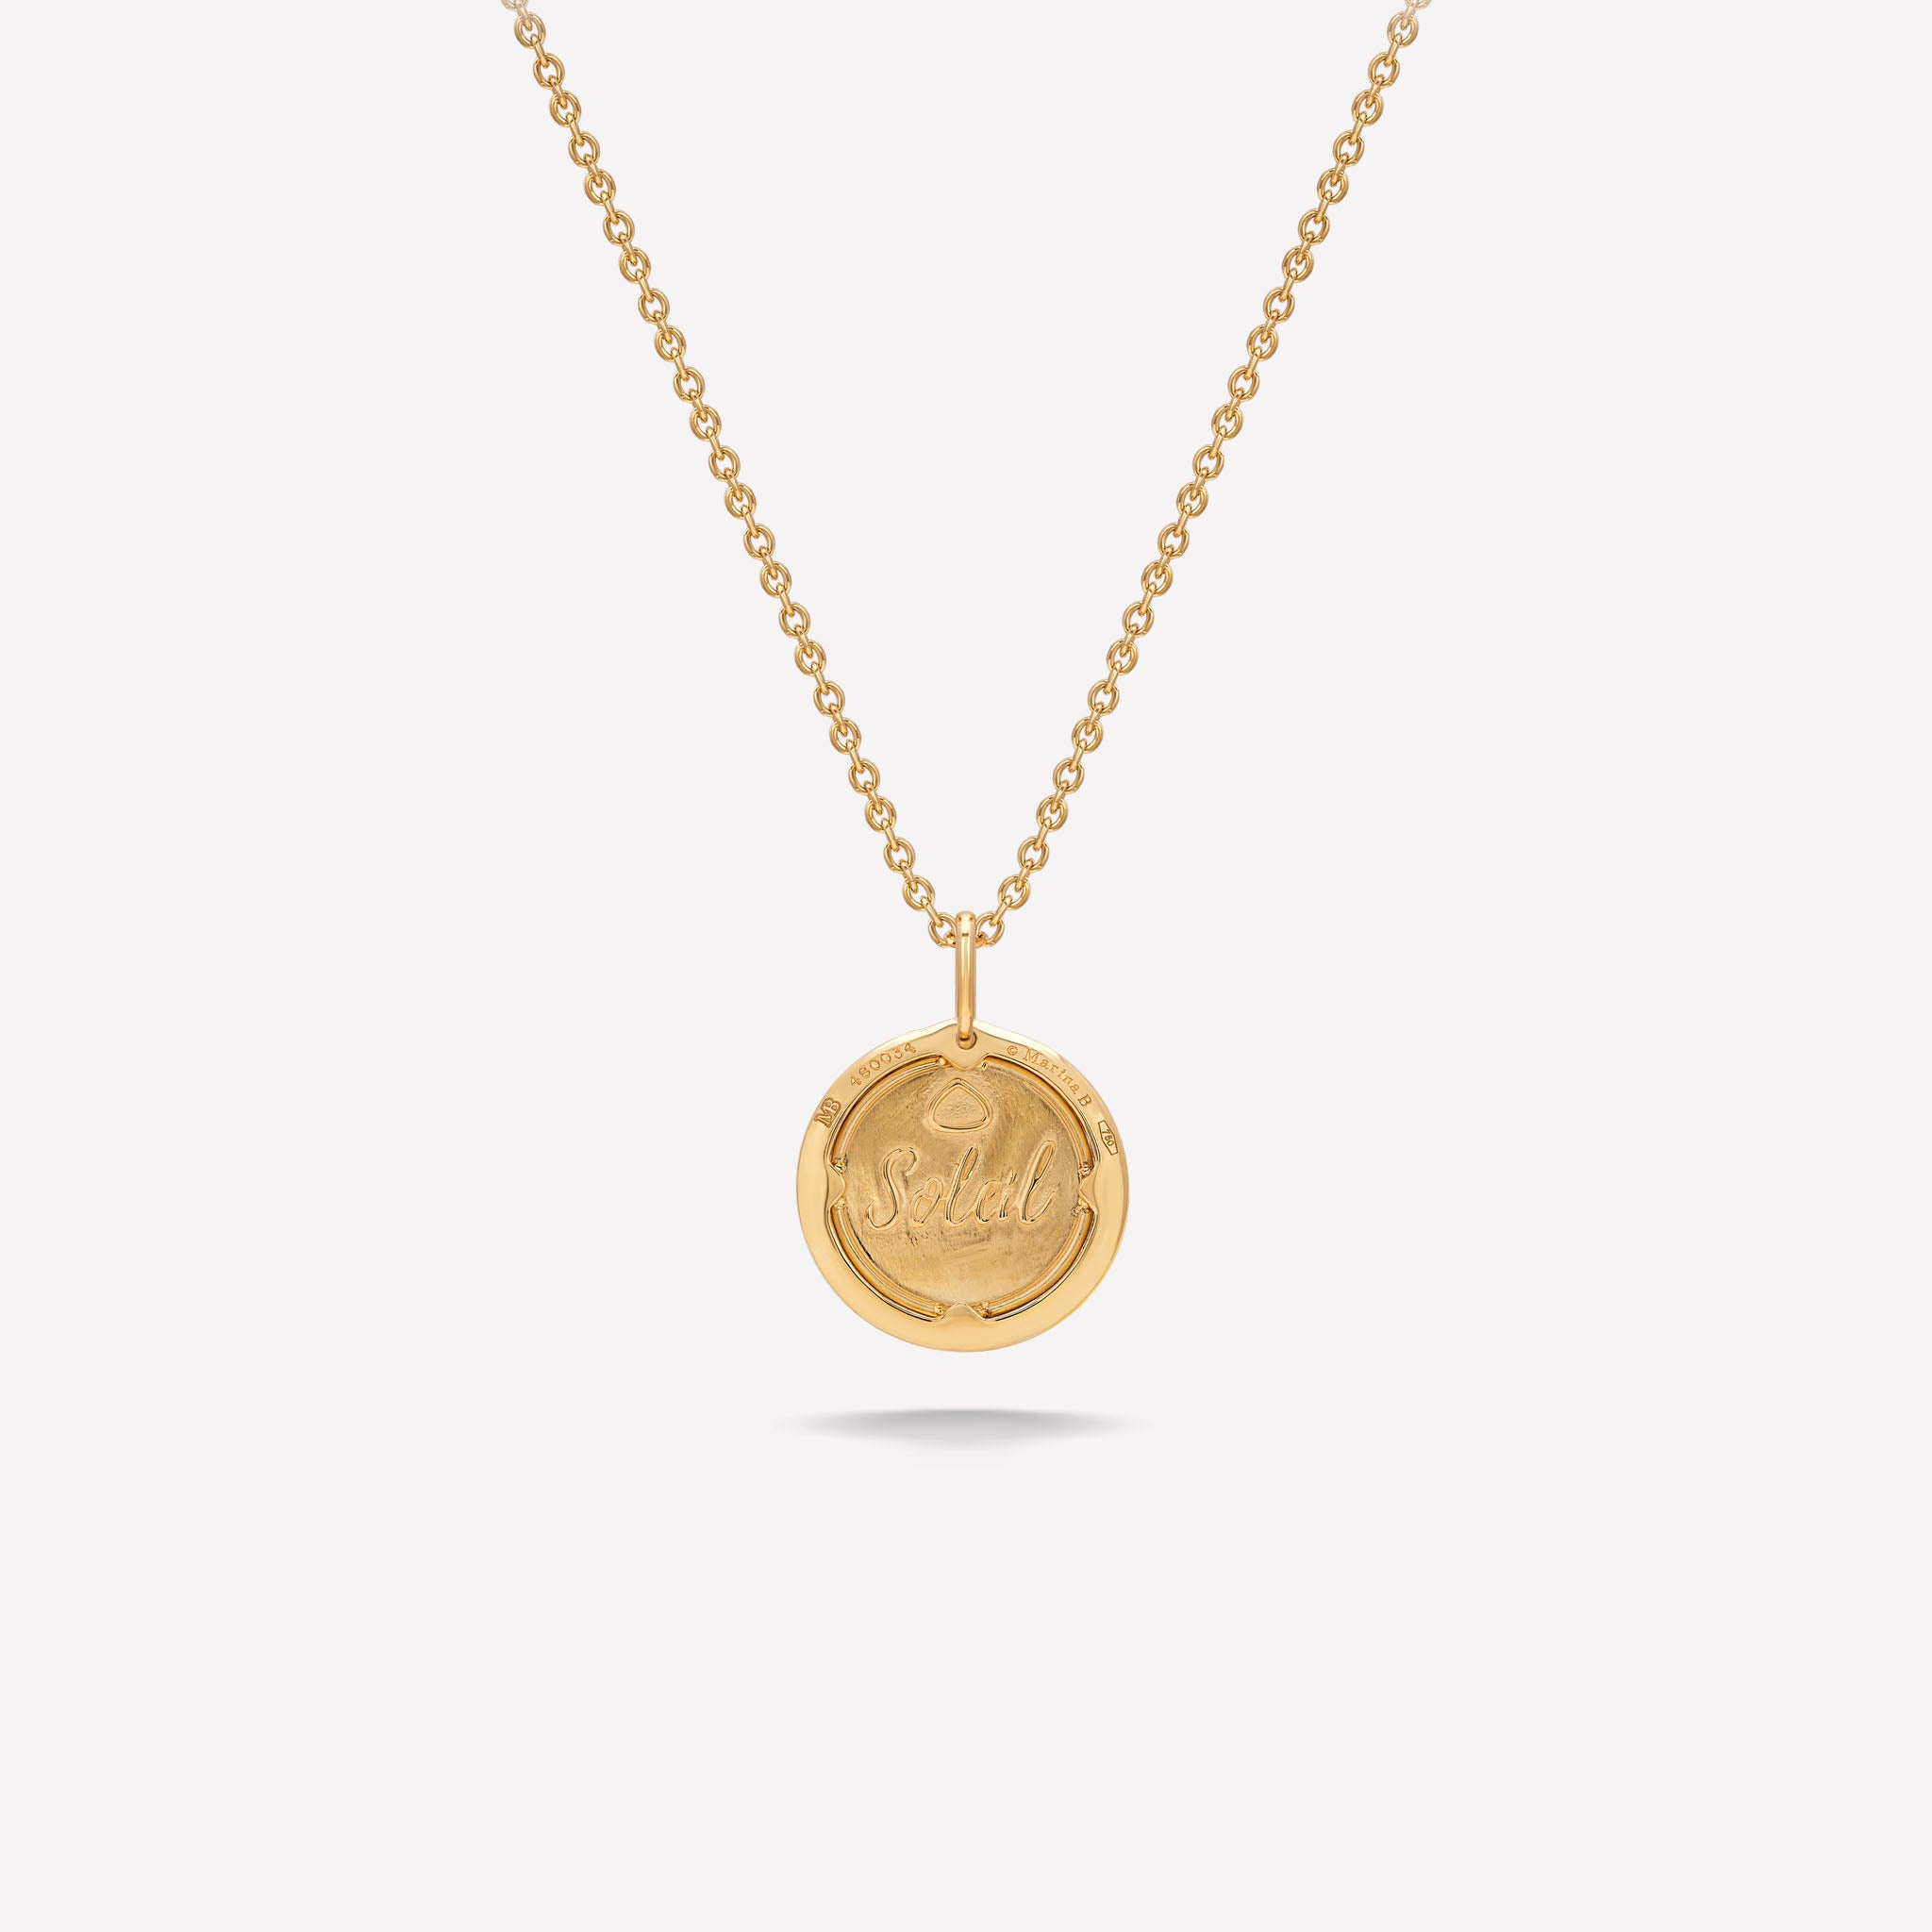 marinab.com, 18KYG 14mm Soleil Gold Diamond Pavé Pendant